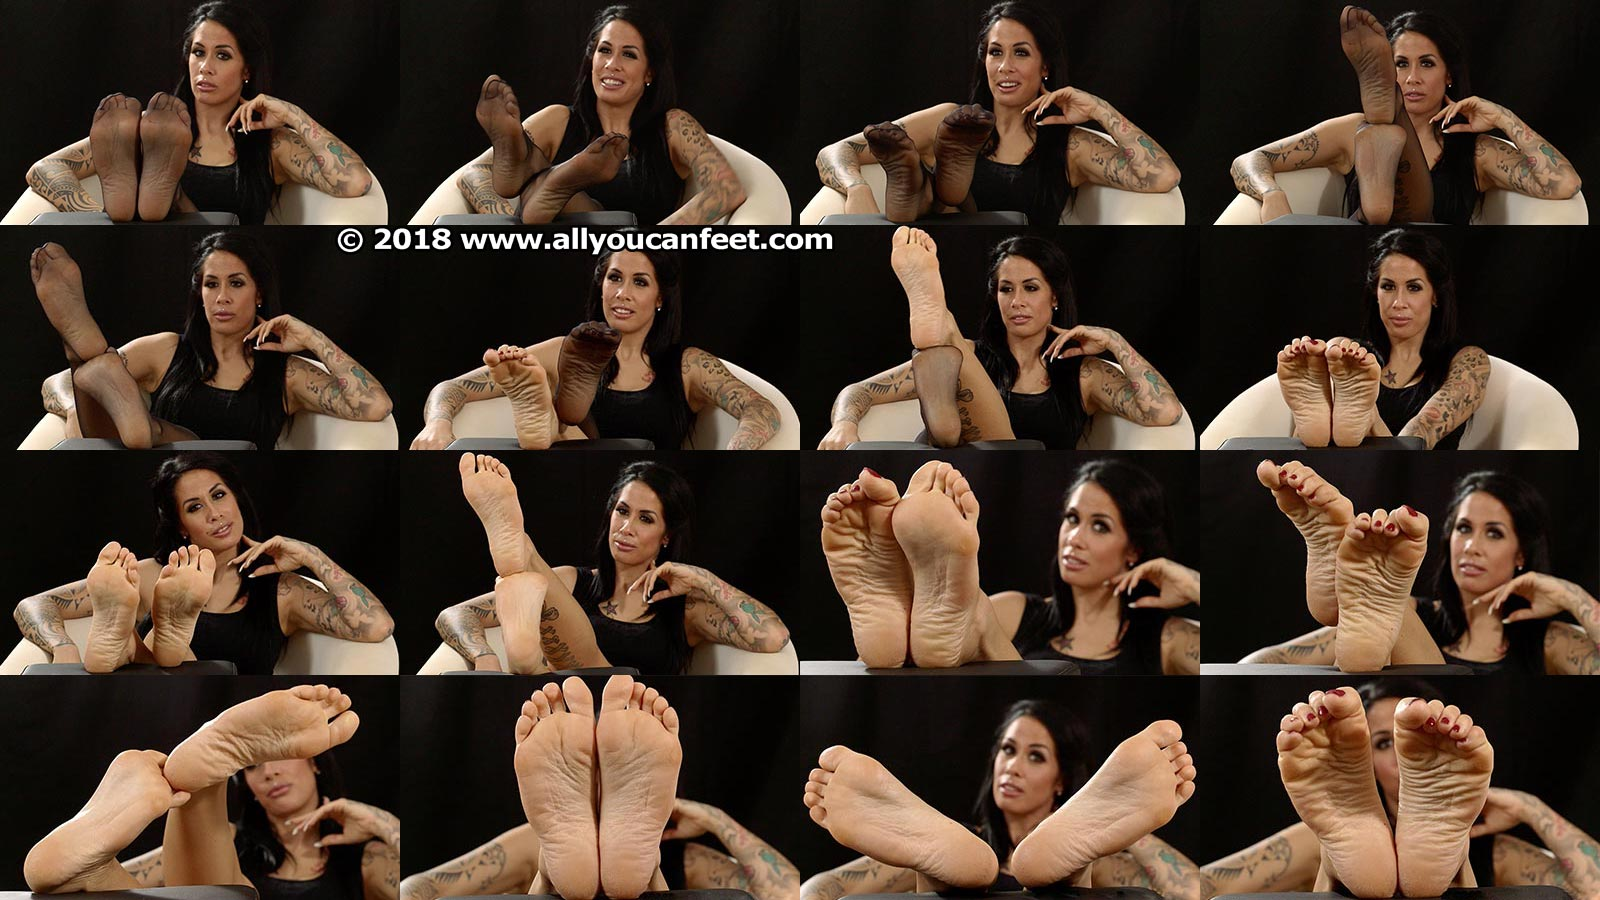 big preview pic from set 2388 showing Allyoucanfeet model Snooki